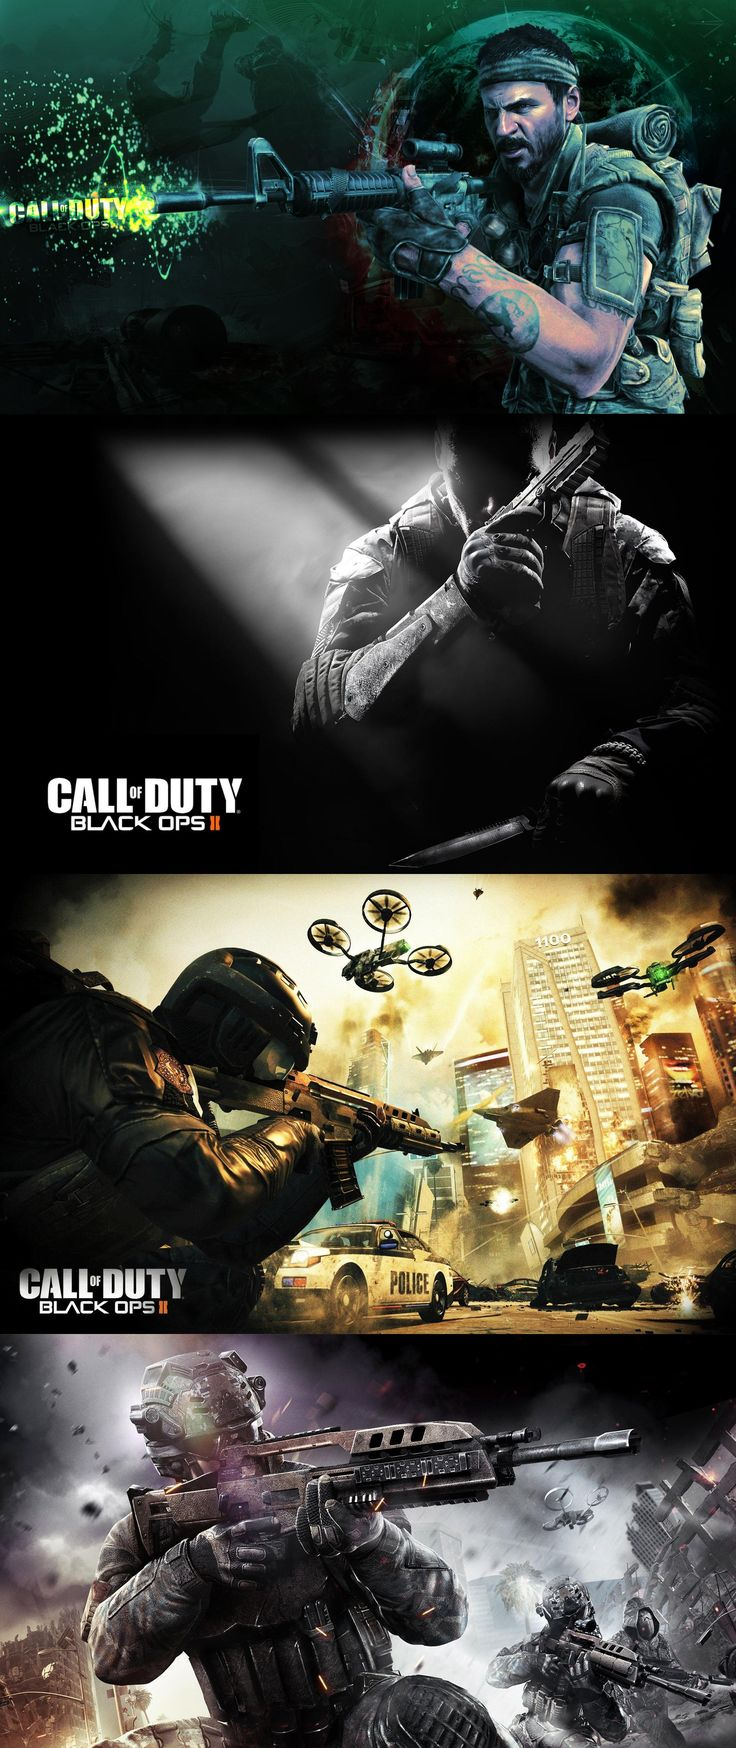 Call of Duty Black Ops 2...